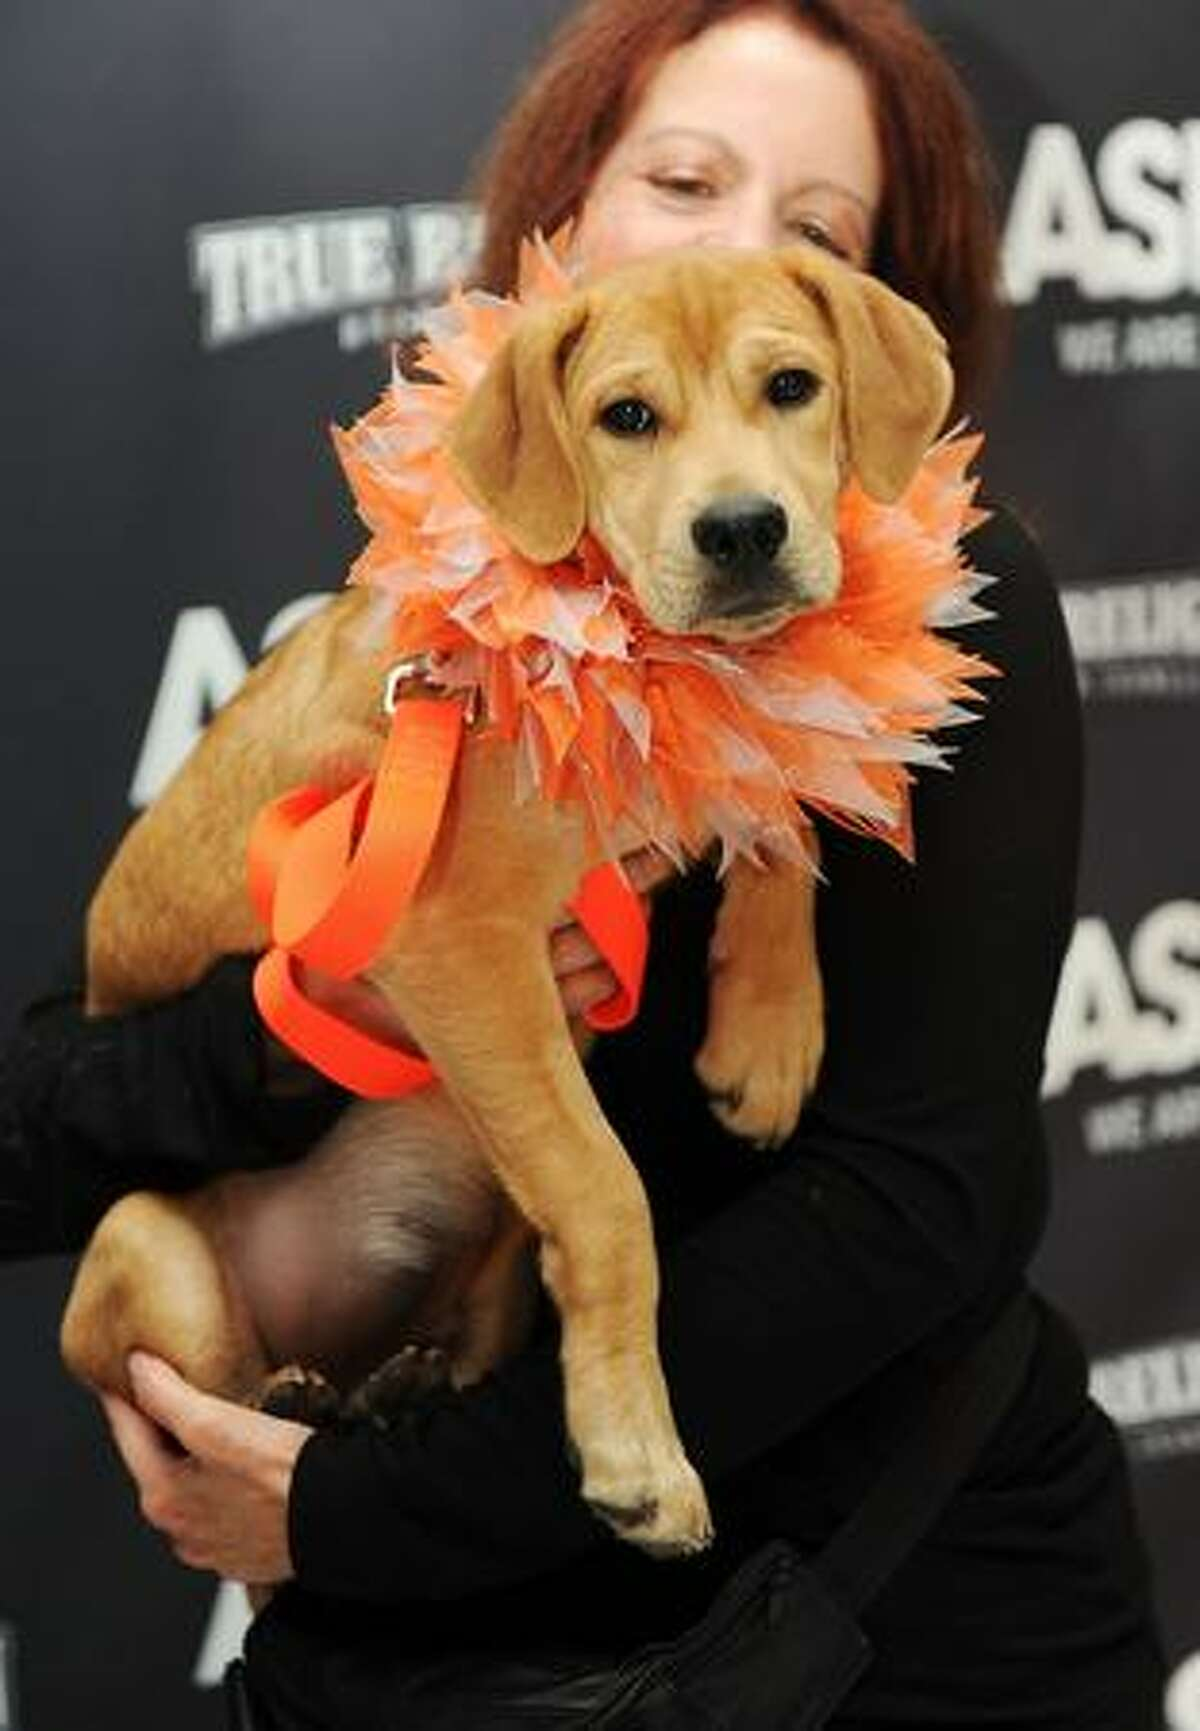 One of the dogs up for adoption at the 2009 ASPCA Young Friends benefit at the IAC Building in New York City.